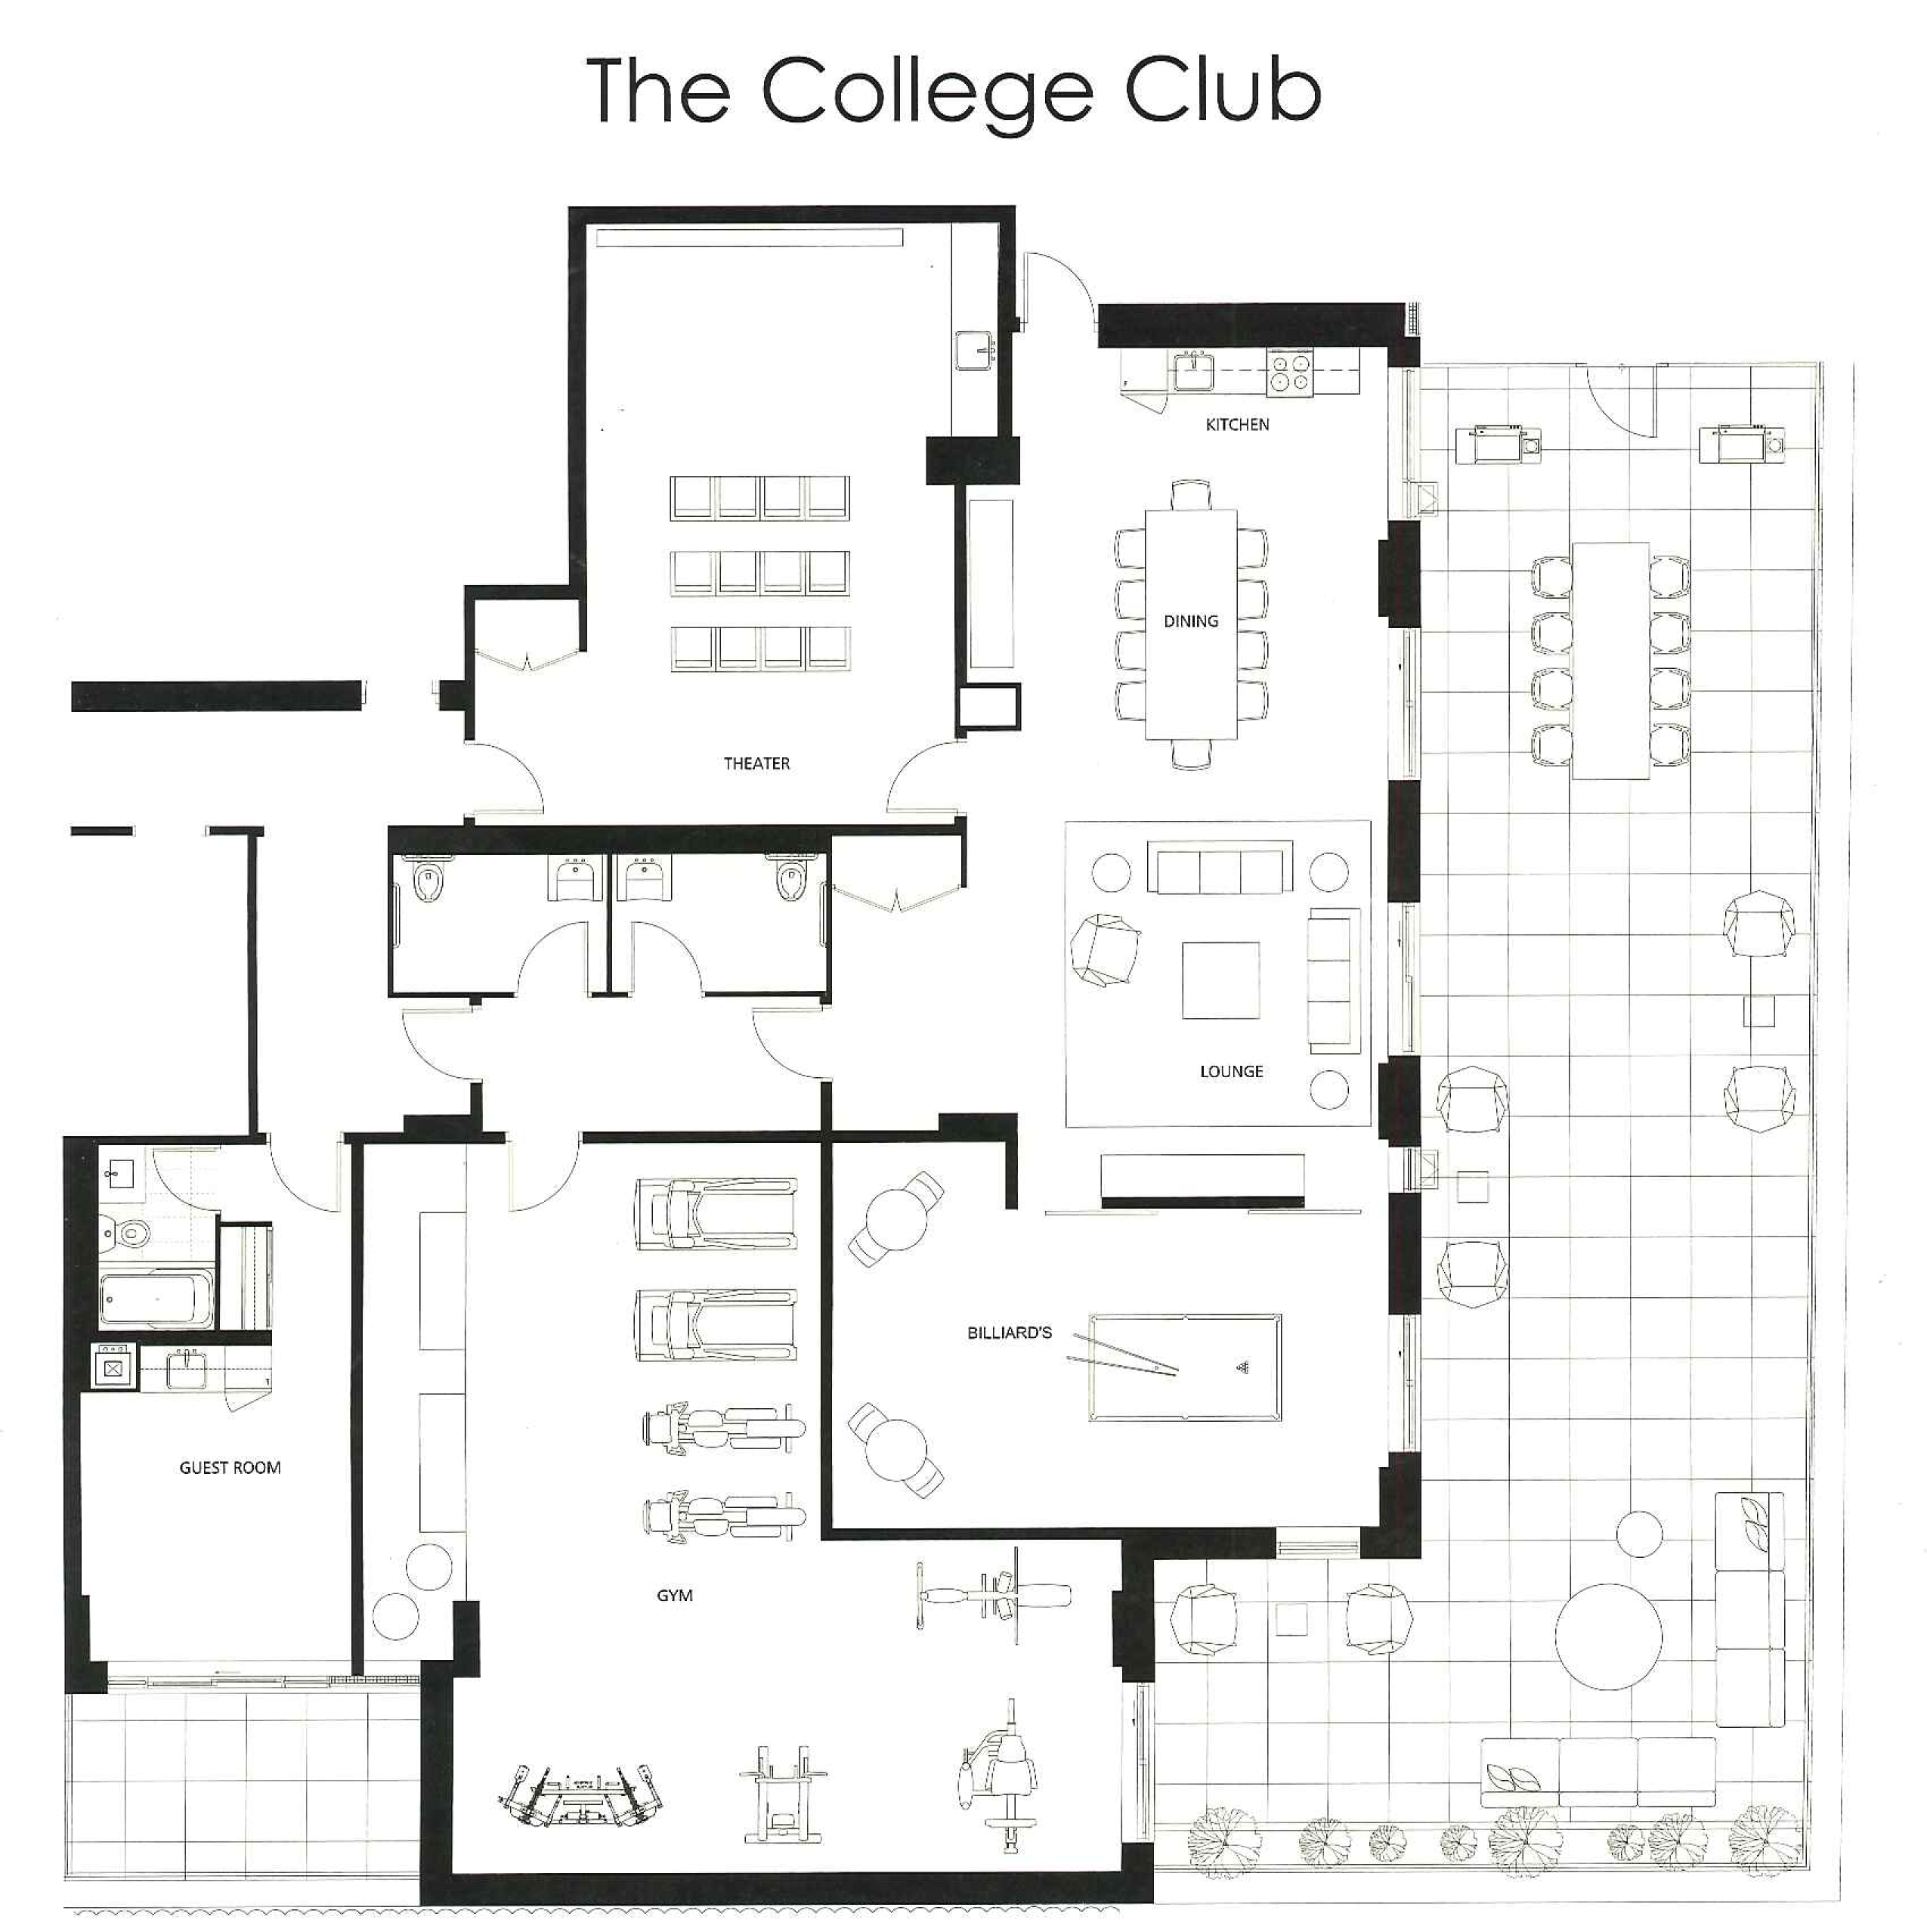 297 COLLEGE CONDOS AT SPADINA - THE COLLEGE CLUB AMENITIES